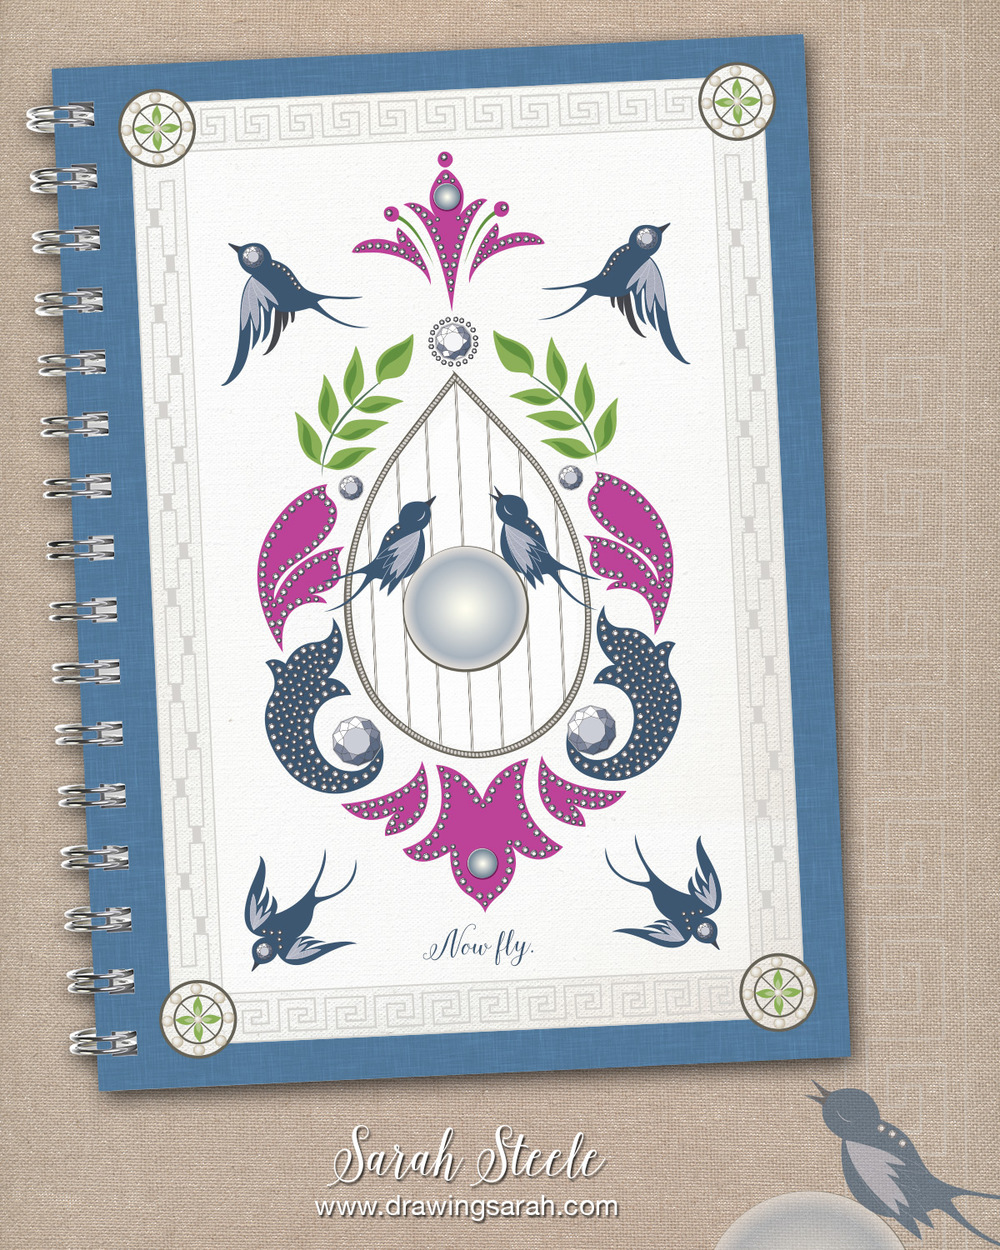 drawingsarah.com | MATS journal design